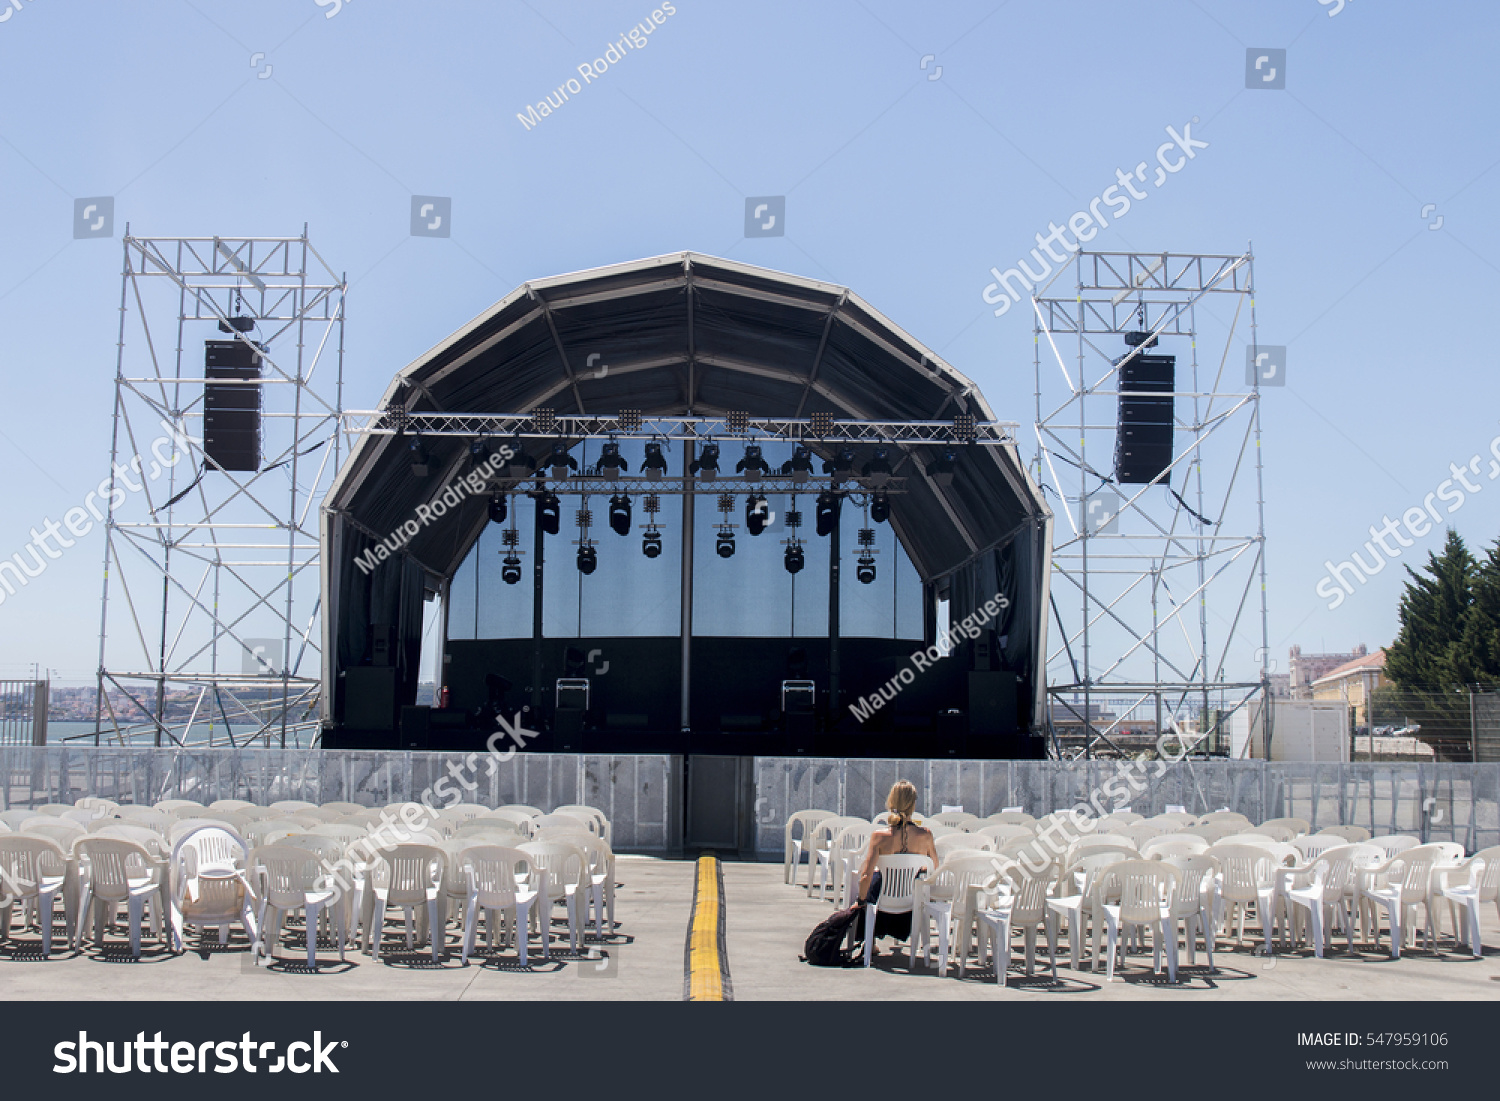 Empty outdoor concert stage - Empty Outdoor Concert Stage On A Sunny Day